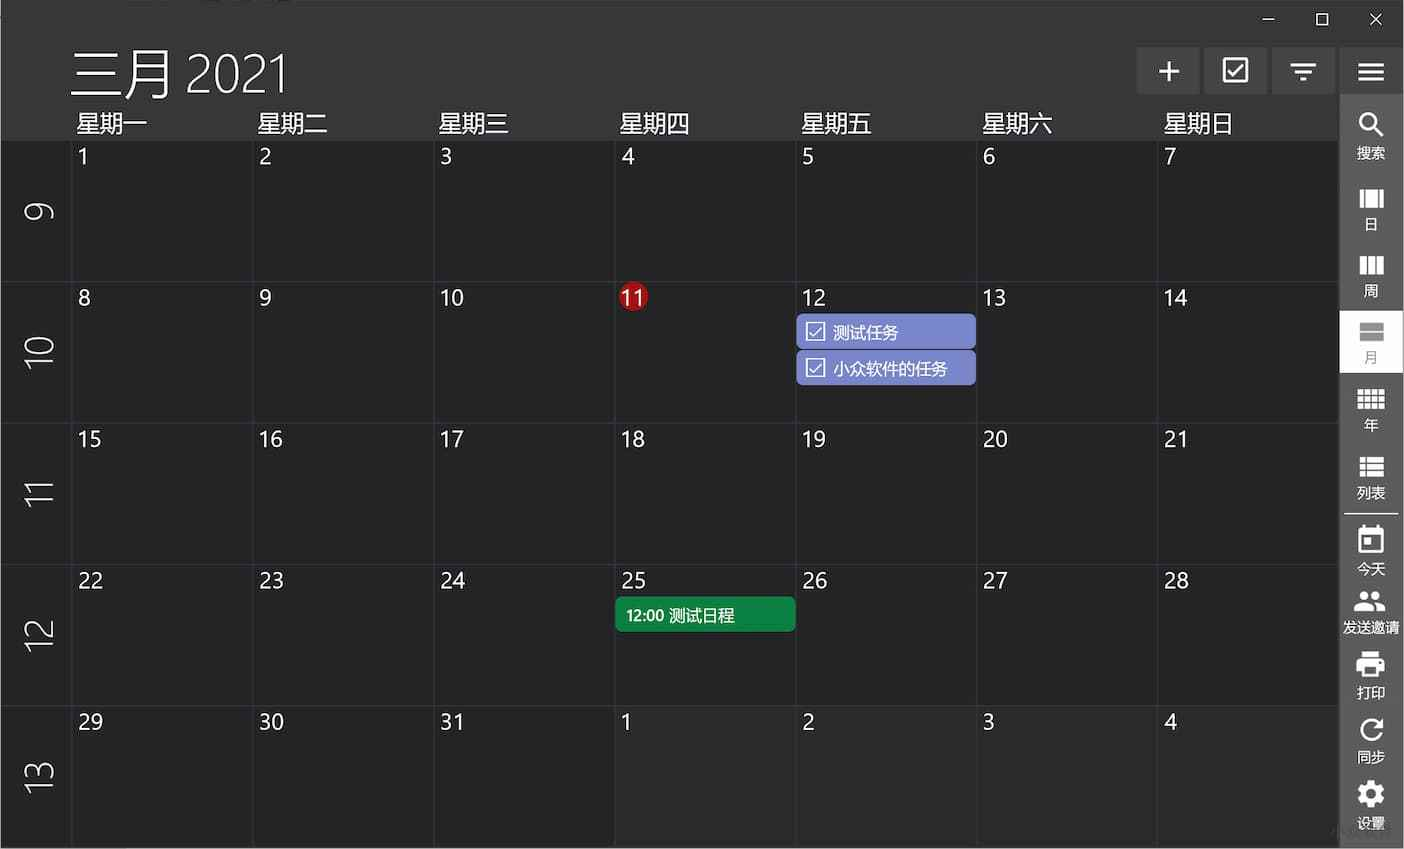 One Calendar - 支持 12 种日历账户,可显示任务的聚合型日历工具[Win/macOS/iPhone/Android]